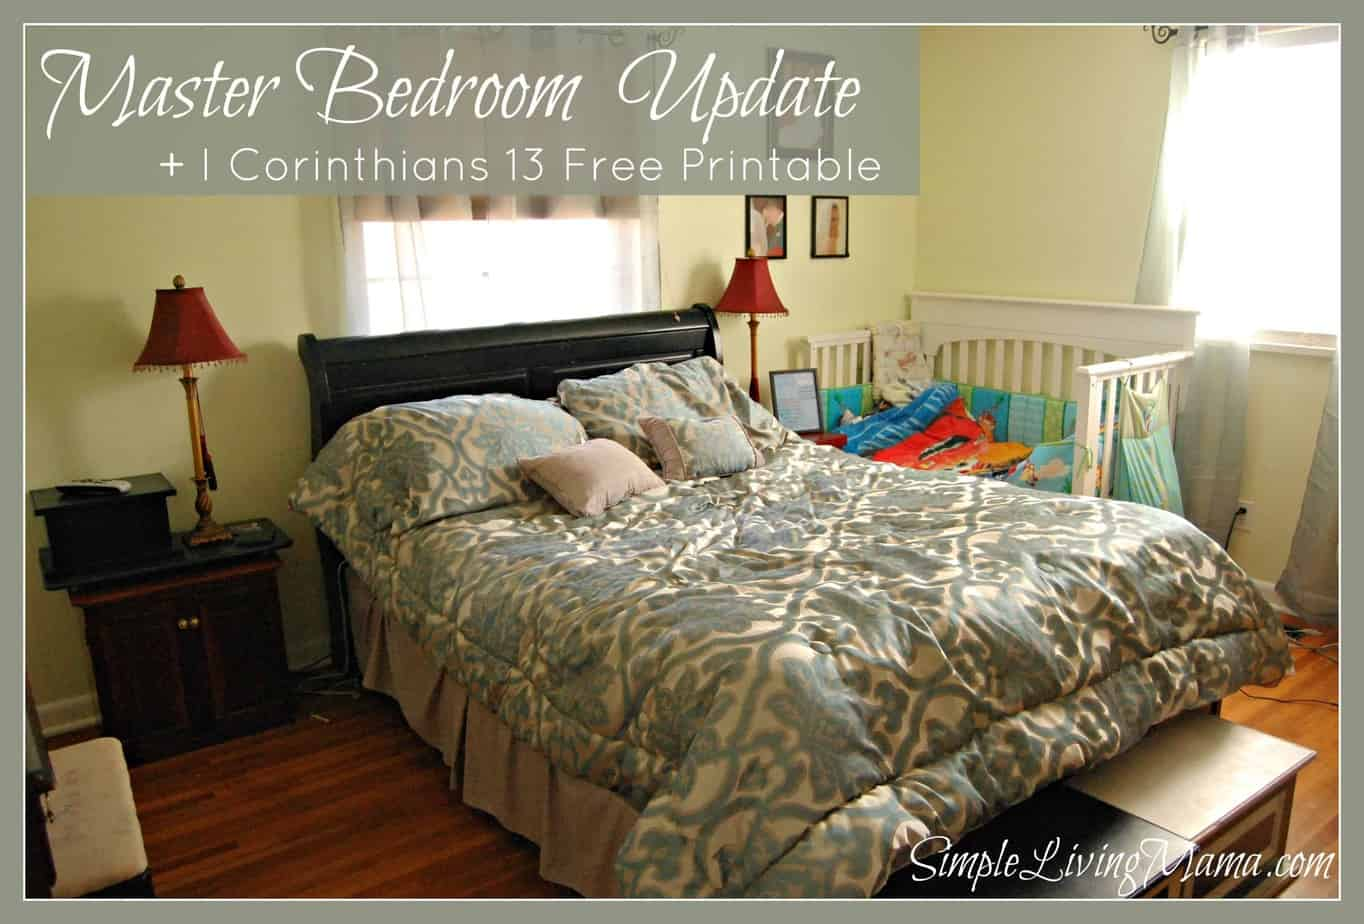 Master Bedroom Updates master bedroom update + i corinthians 13 printable - life